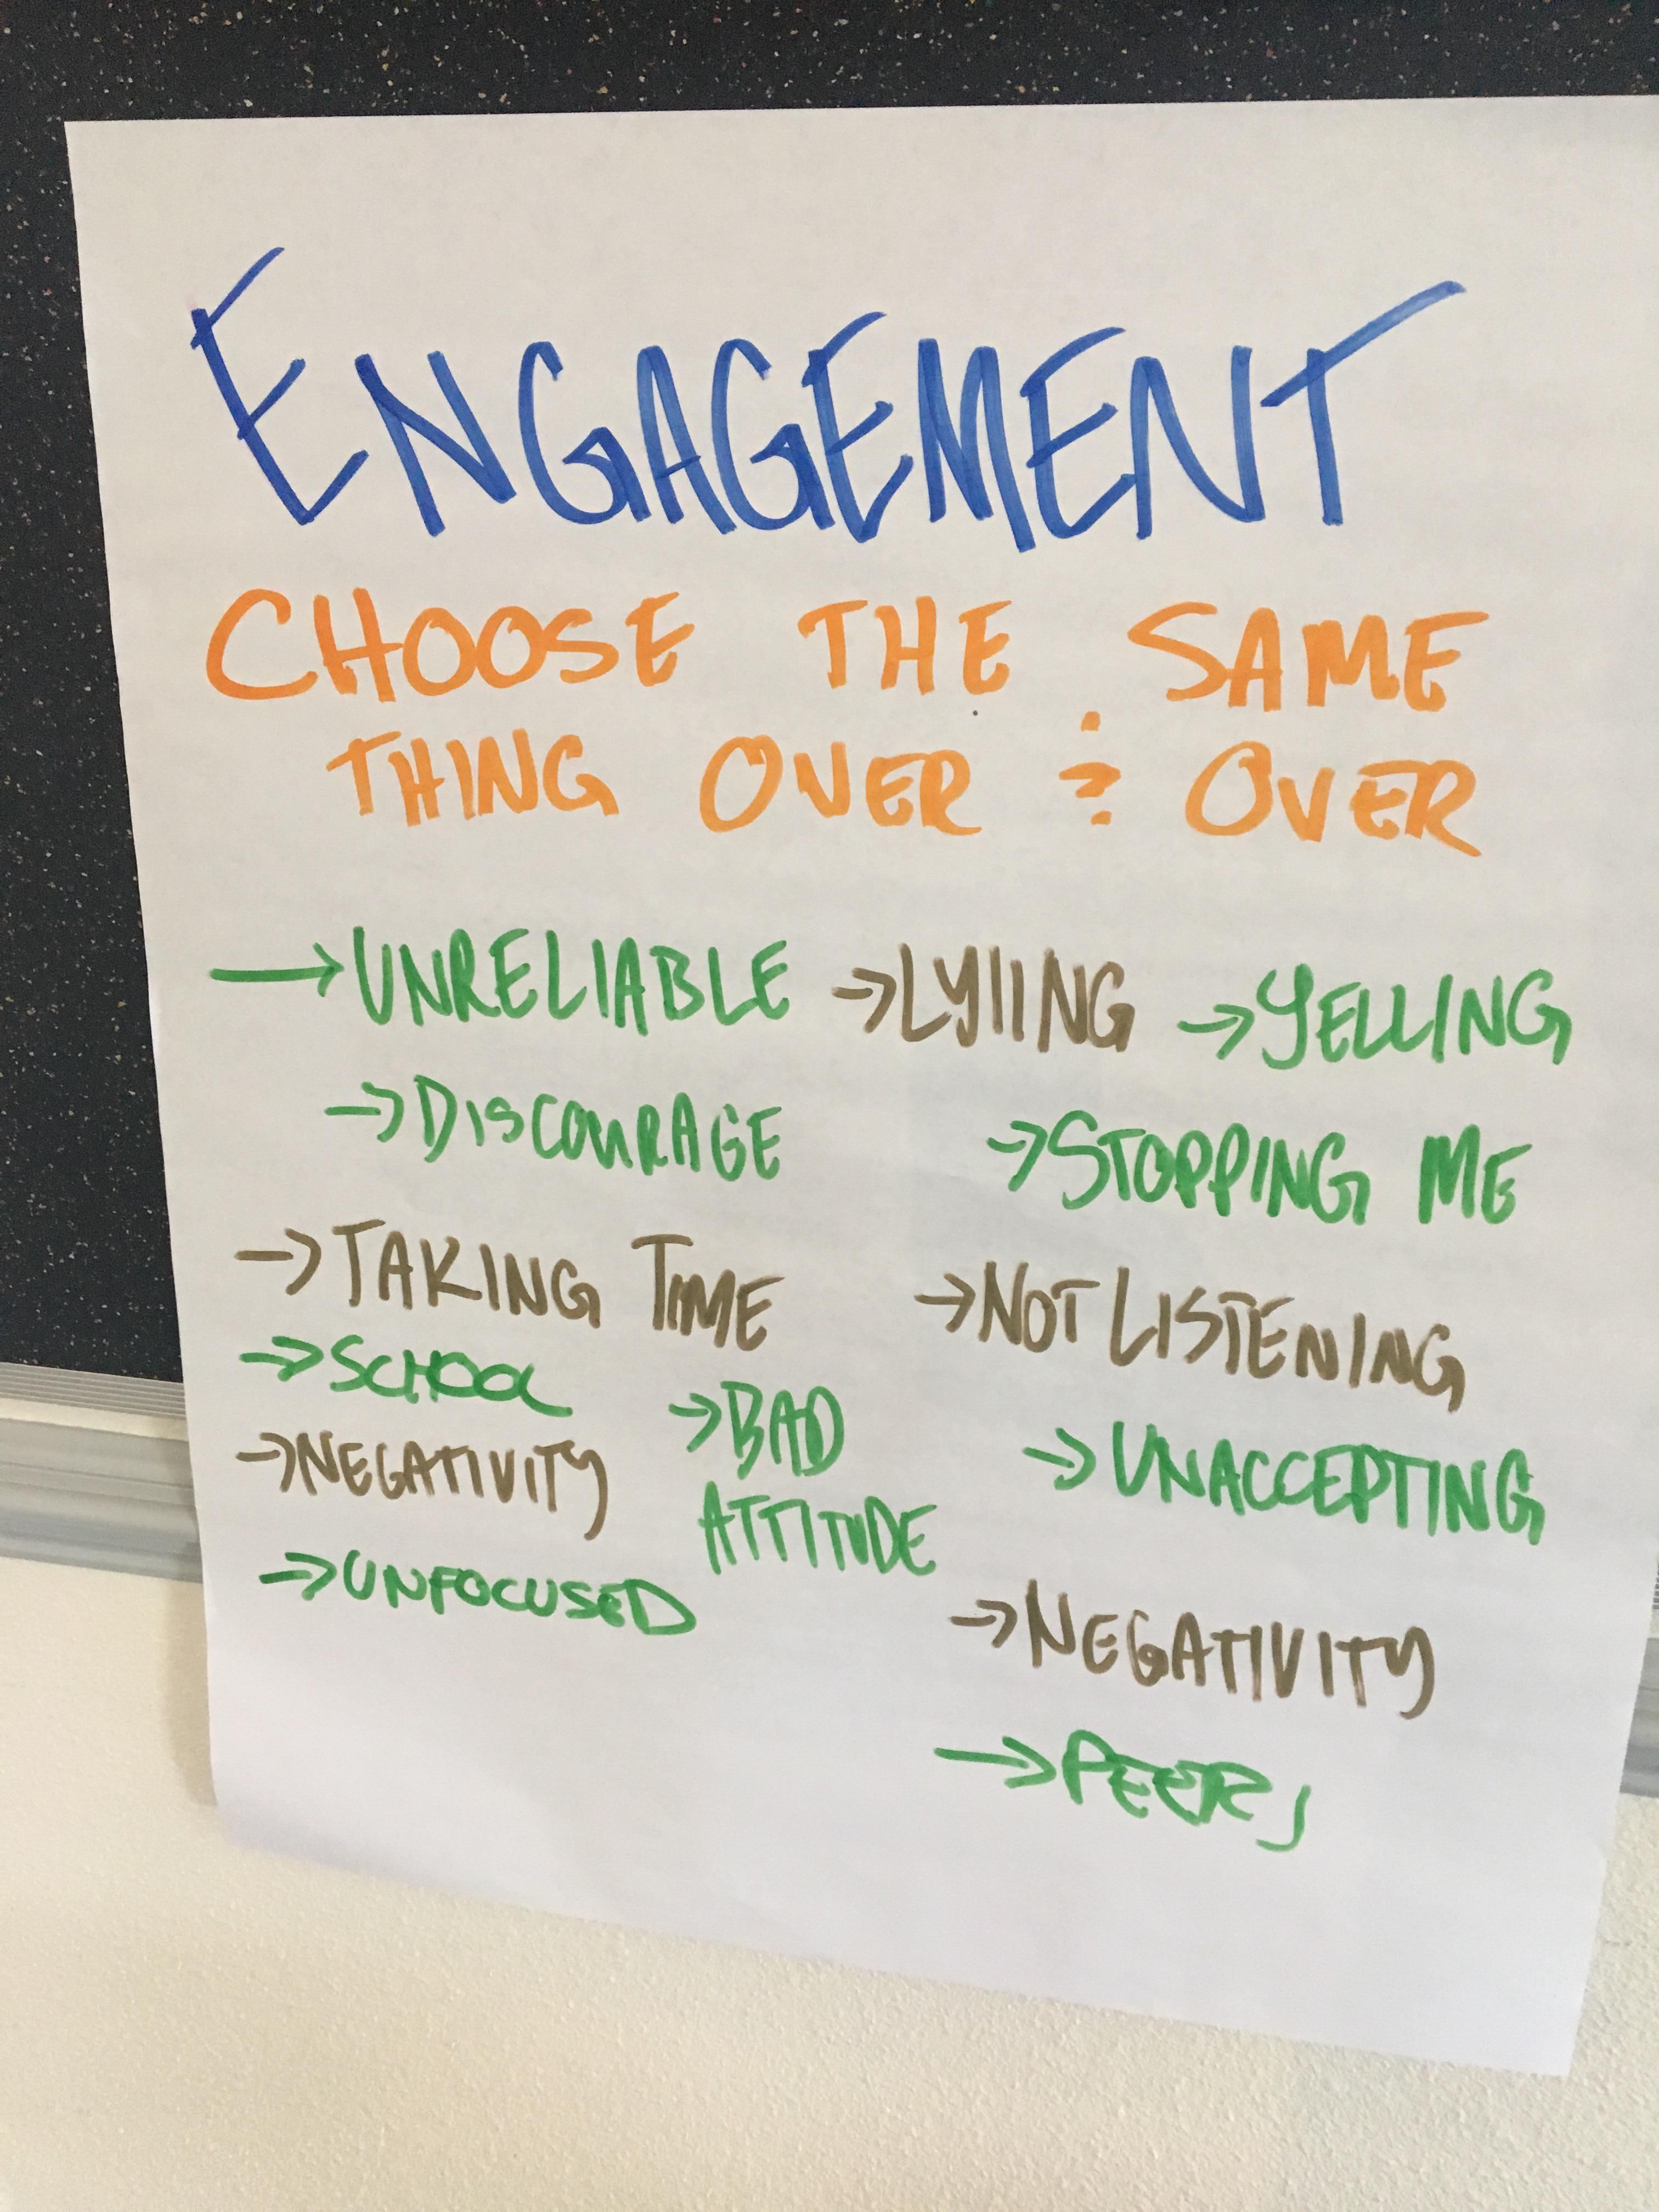 These are barriers to Youth Engagement at home identified by youth and parents in my last workshop.